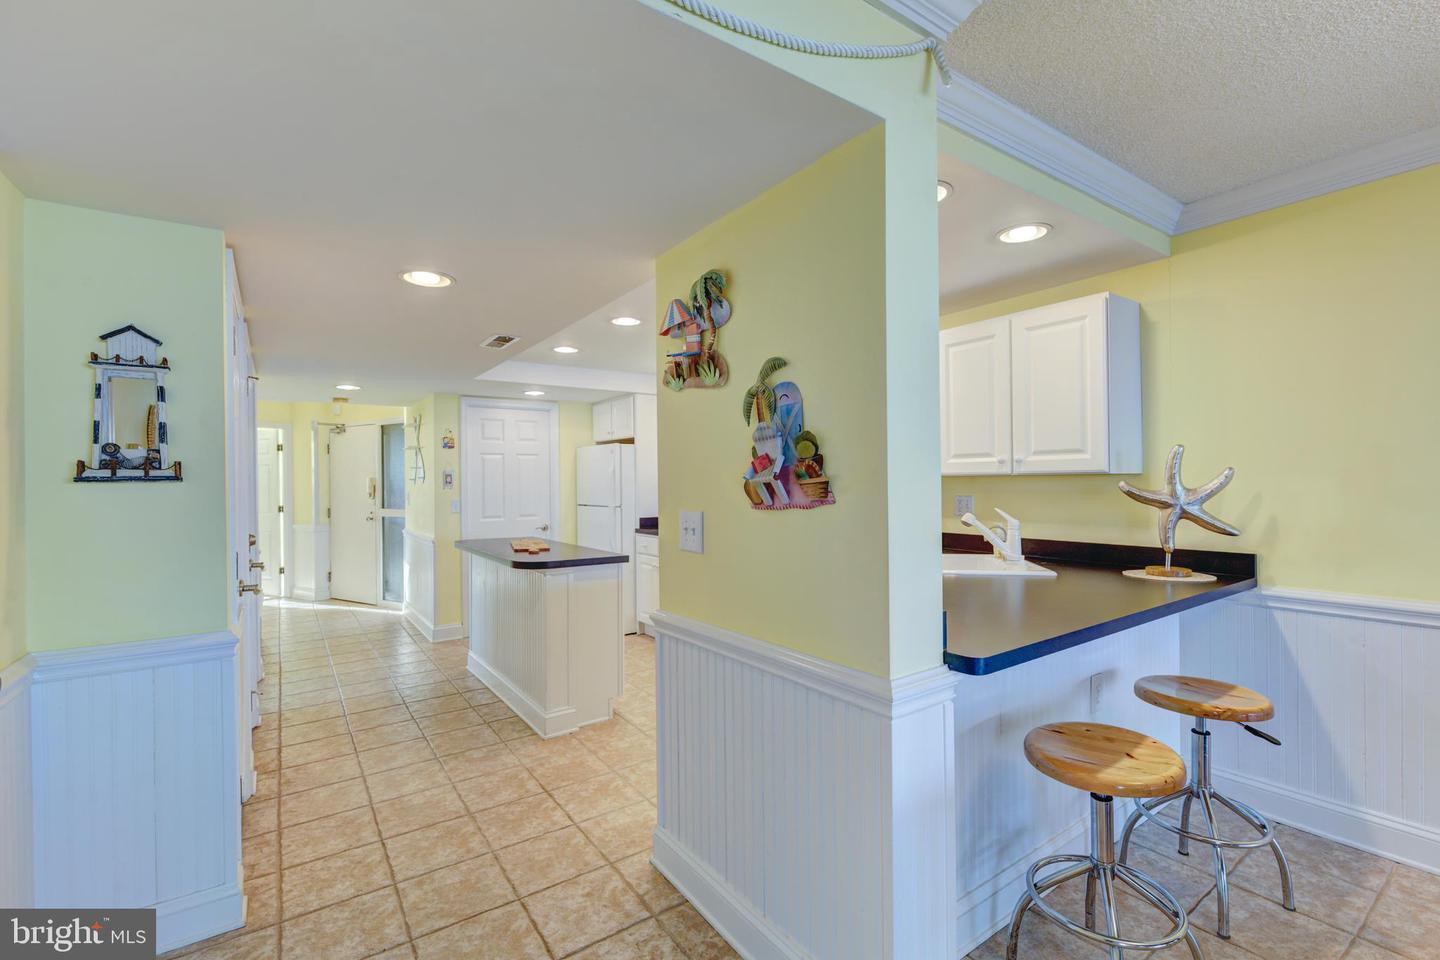 DESU152792-302186530774-2019-12-16-14-23-17 1206 S Edgewater House Rd #1206s | Bethany Beach, De Real Estate For Sale | MLS# Desu152792  - Suzanne Macnab